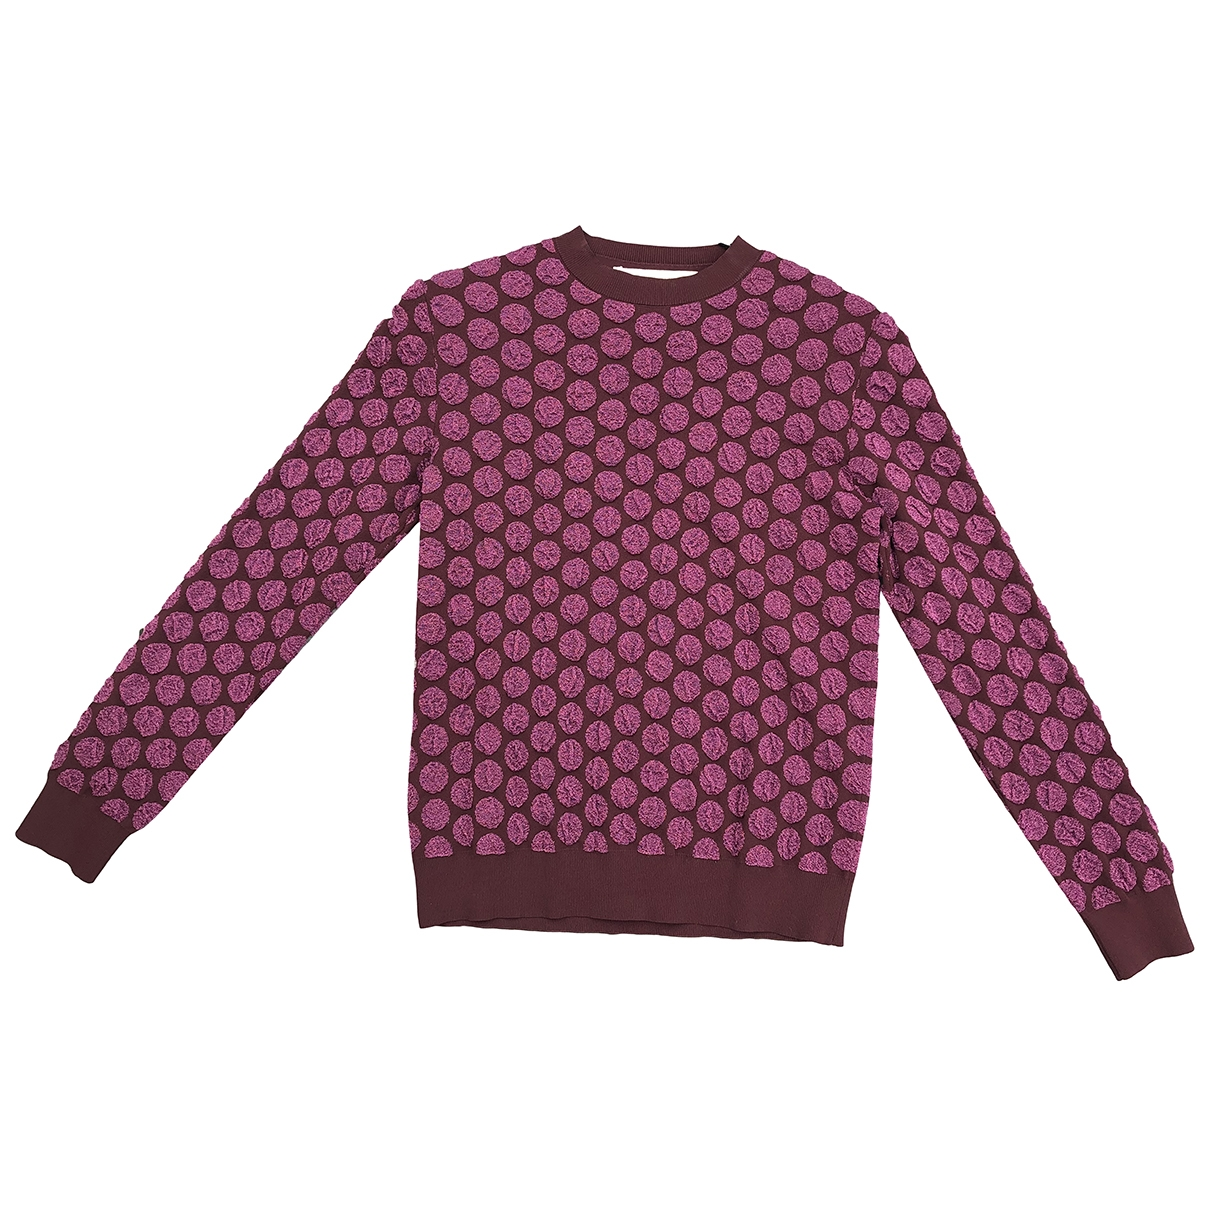 Marni \N Pullover in  Rosa Polyester